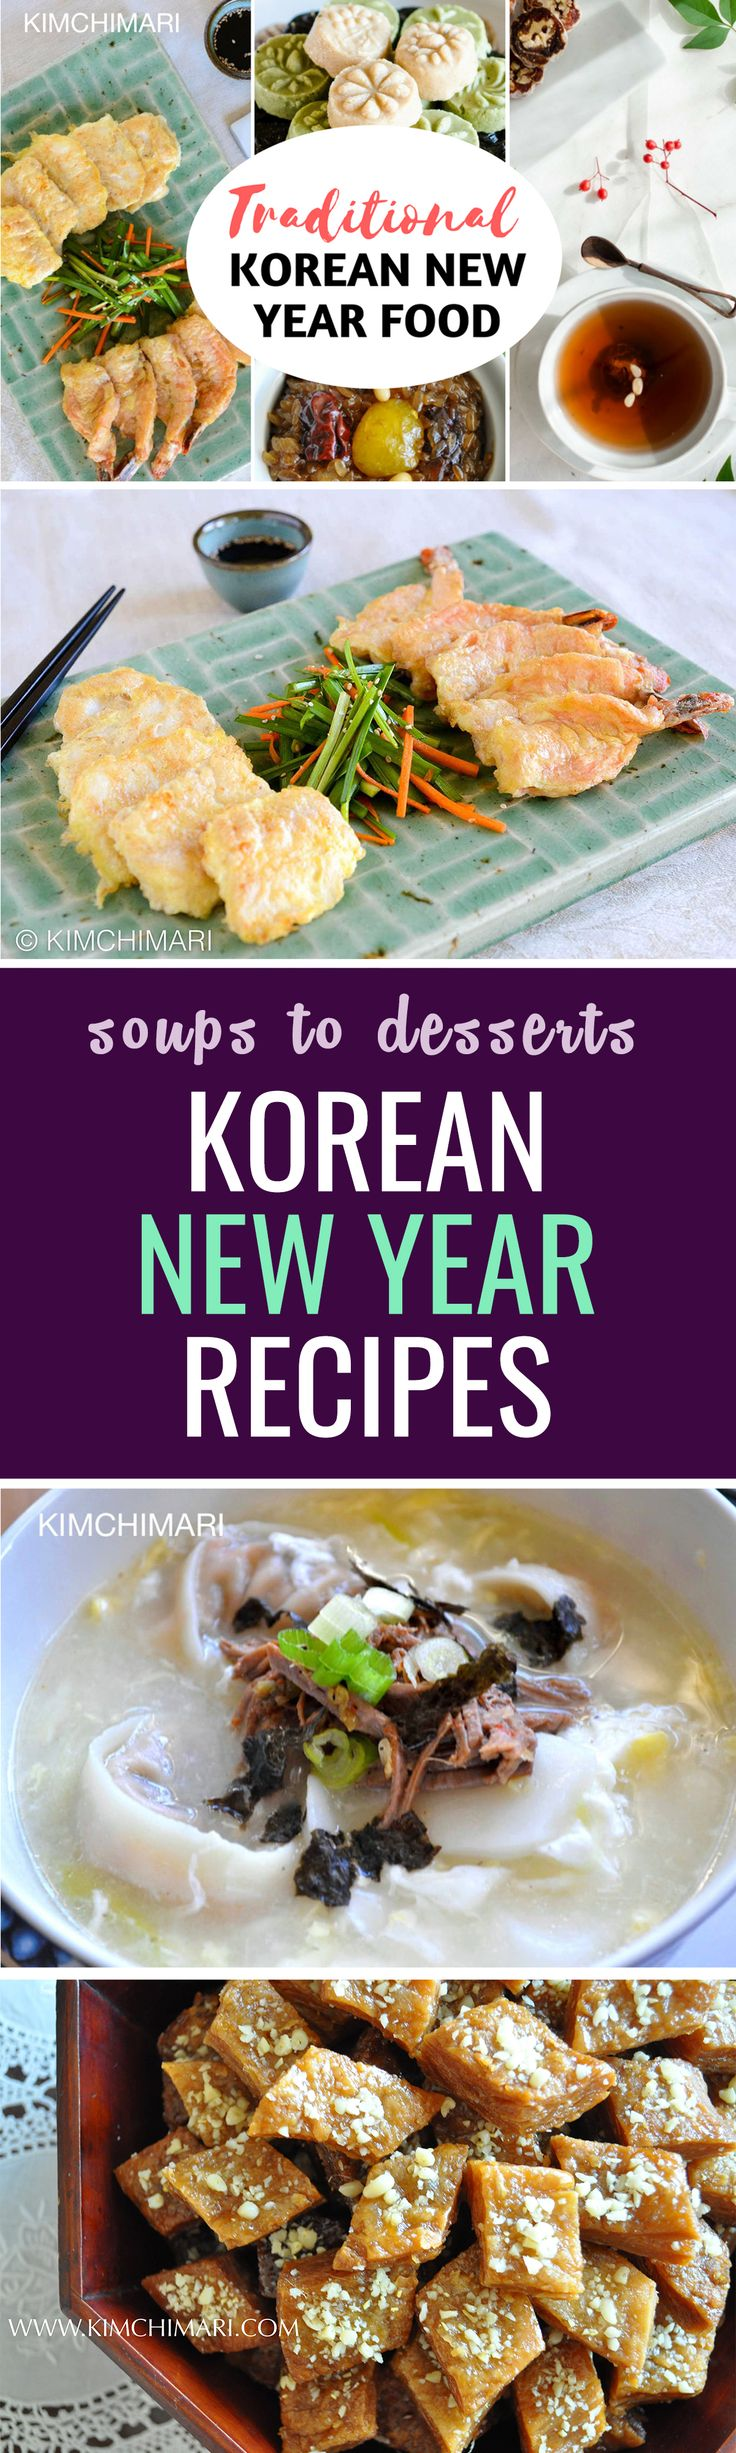 Get ready for these traditional Korean New Year recipes from rice cake soups to yakwa pastry desserts!